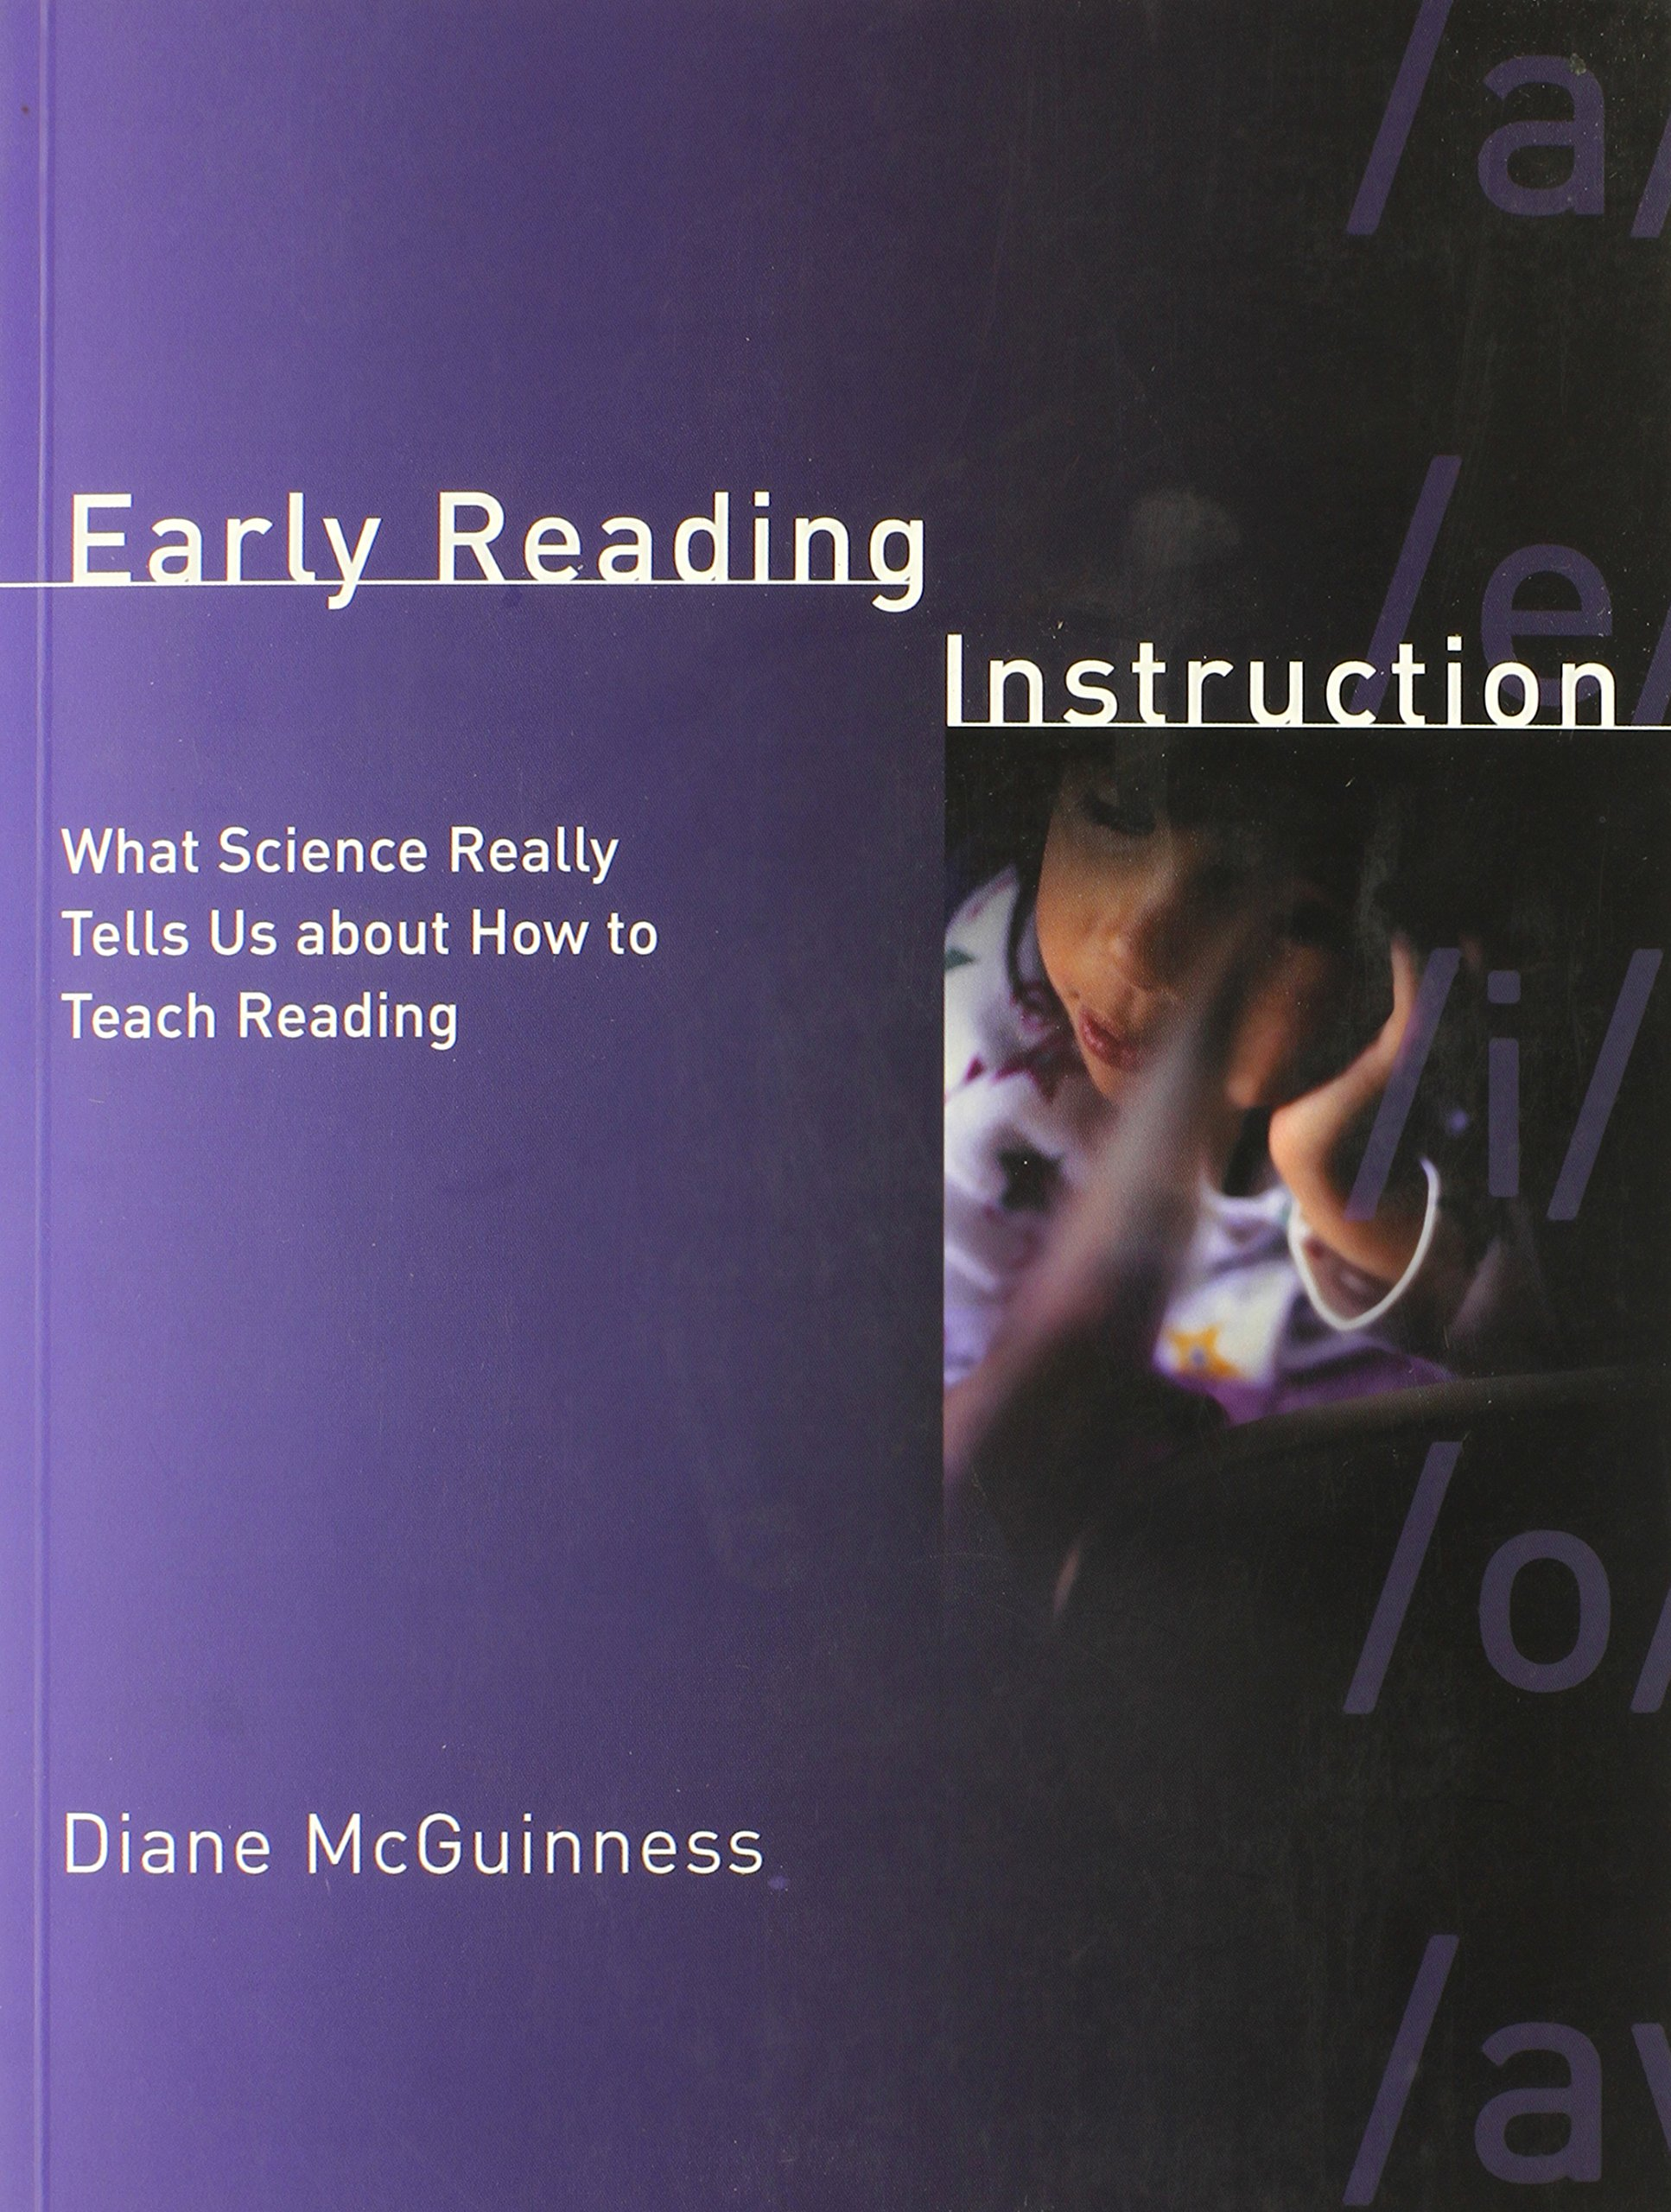 Amazon: Early Reading Instruction: What Science Really Tells Us About  How To Teach Reading (mit Press) (9780262633352): Diane Mcguinness: Books